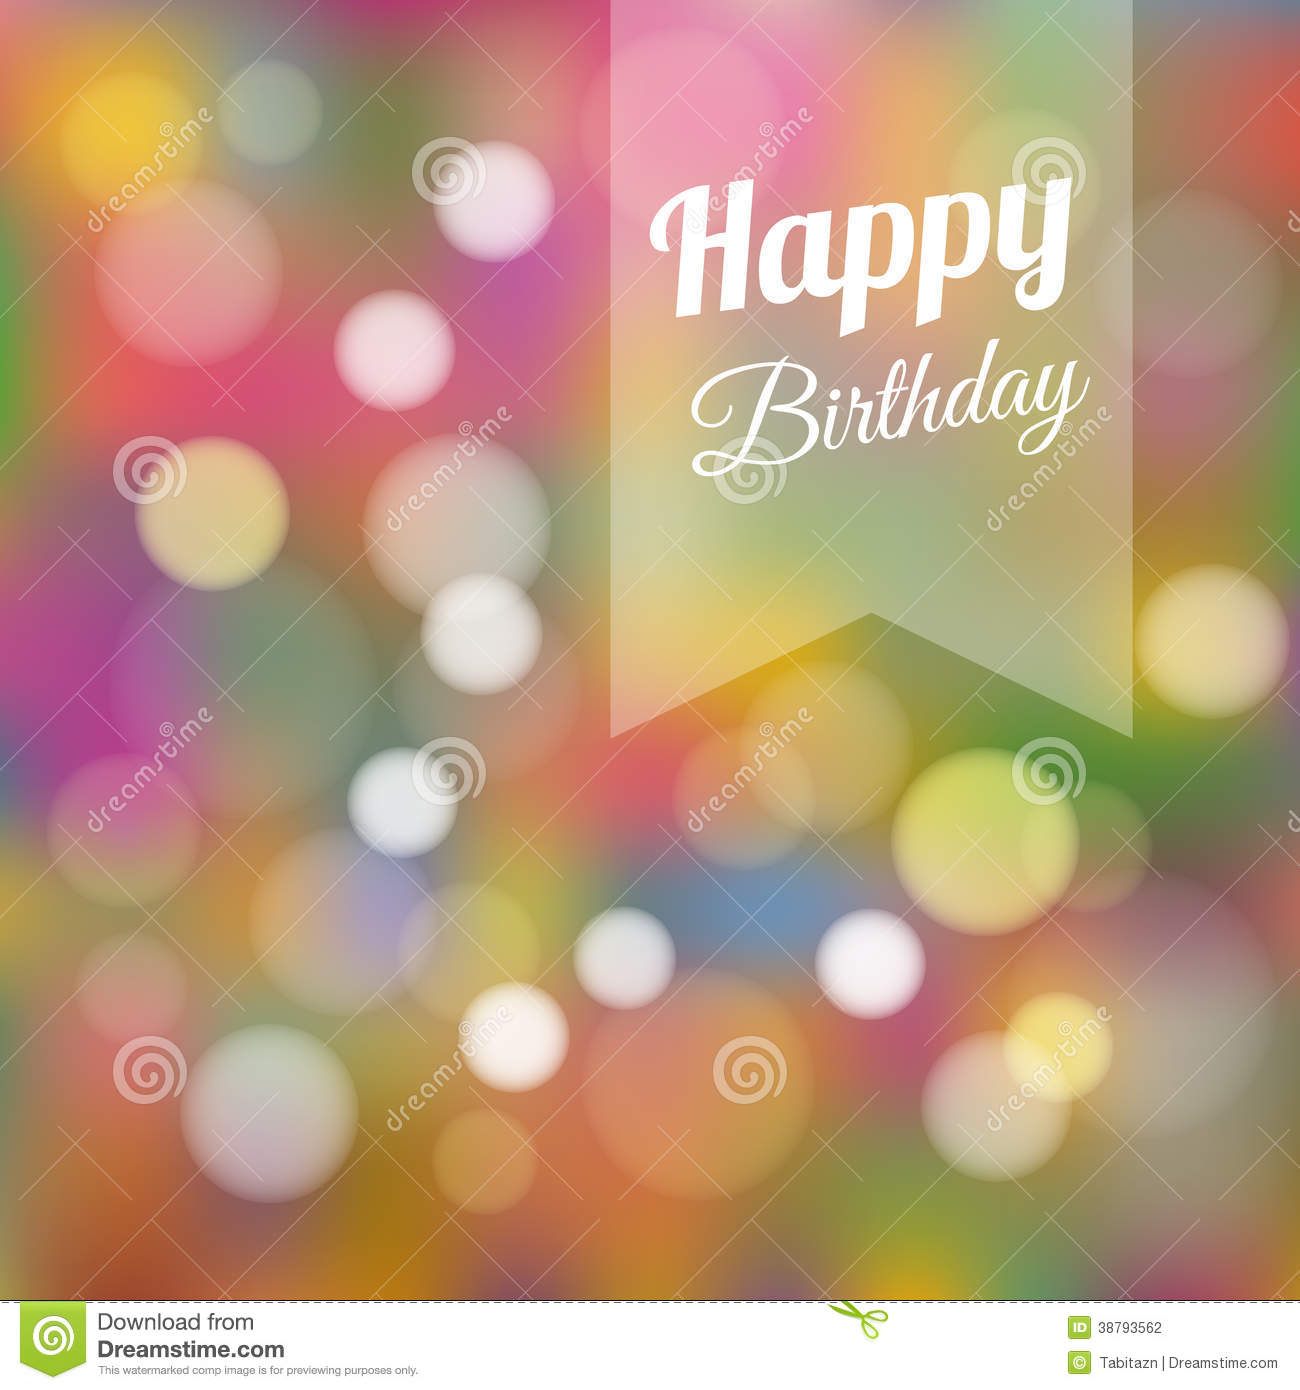 background images for birthday greetings ; birthday-card-invitation-background-design-birthday-card-invitation-background-stock-vector-9